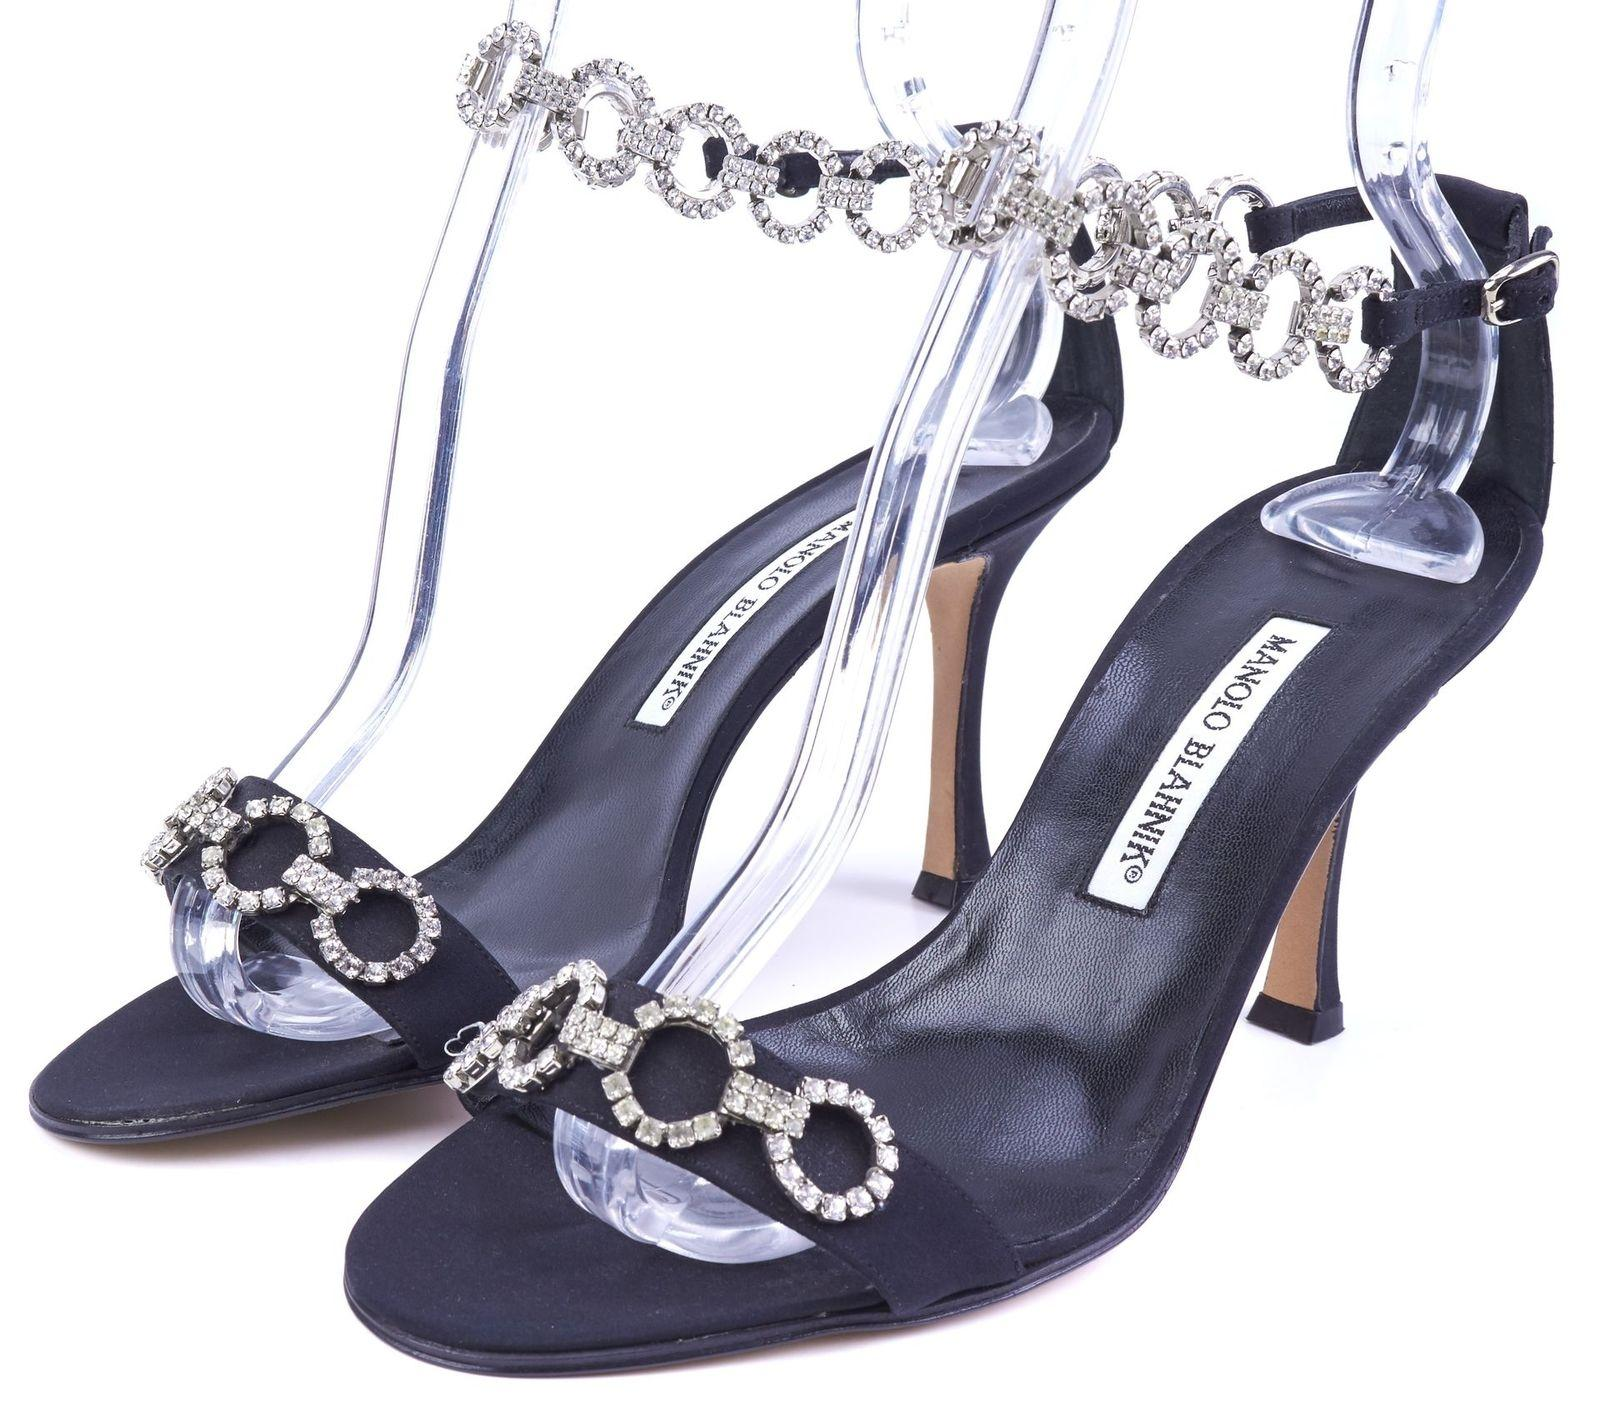 997460e71 Manolo Blahnik Blahnik Blahnik Black Satin Rhinestone - Pumps Size EU 38.5 ( Approx. US 8.5) Regular (M